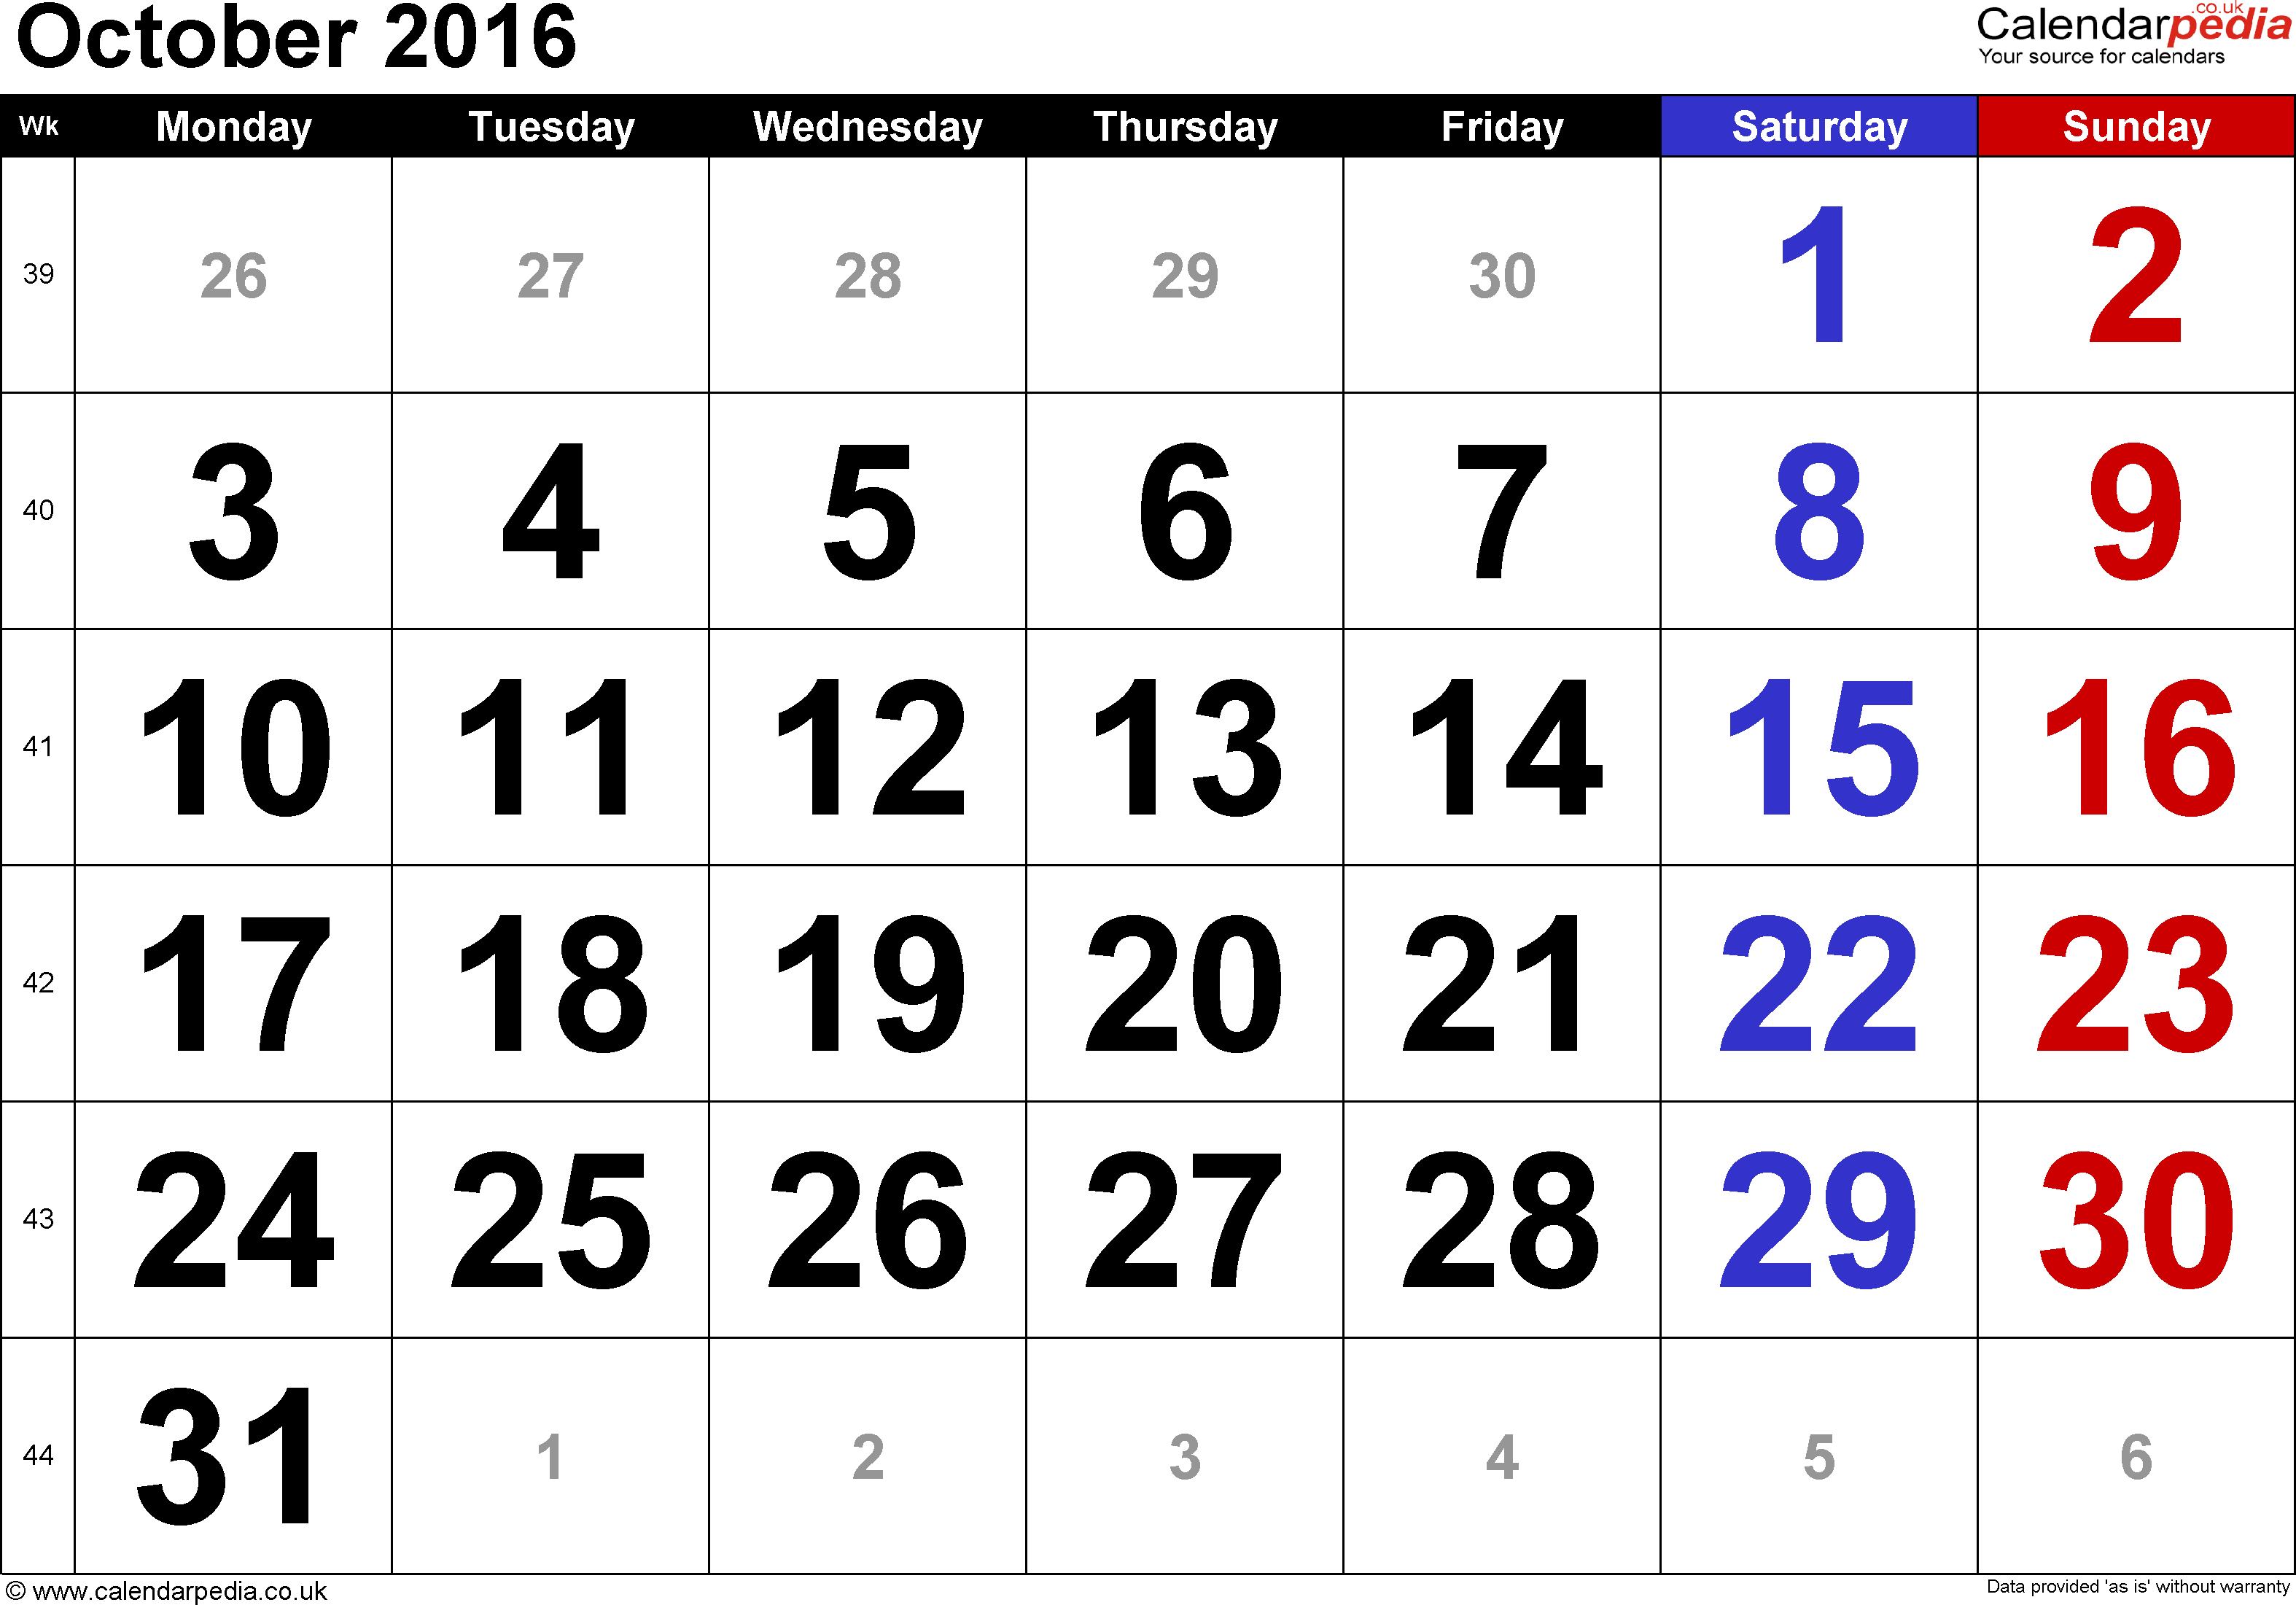 Calendar October 2016, landscape orientation, large numerals, 1 page, with UK bank holidays and week numbers